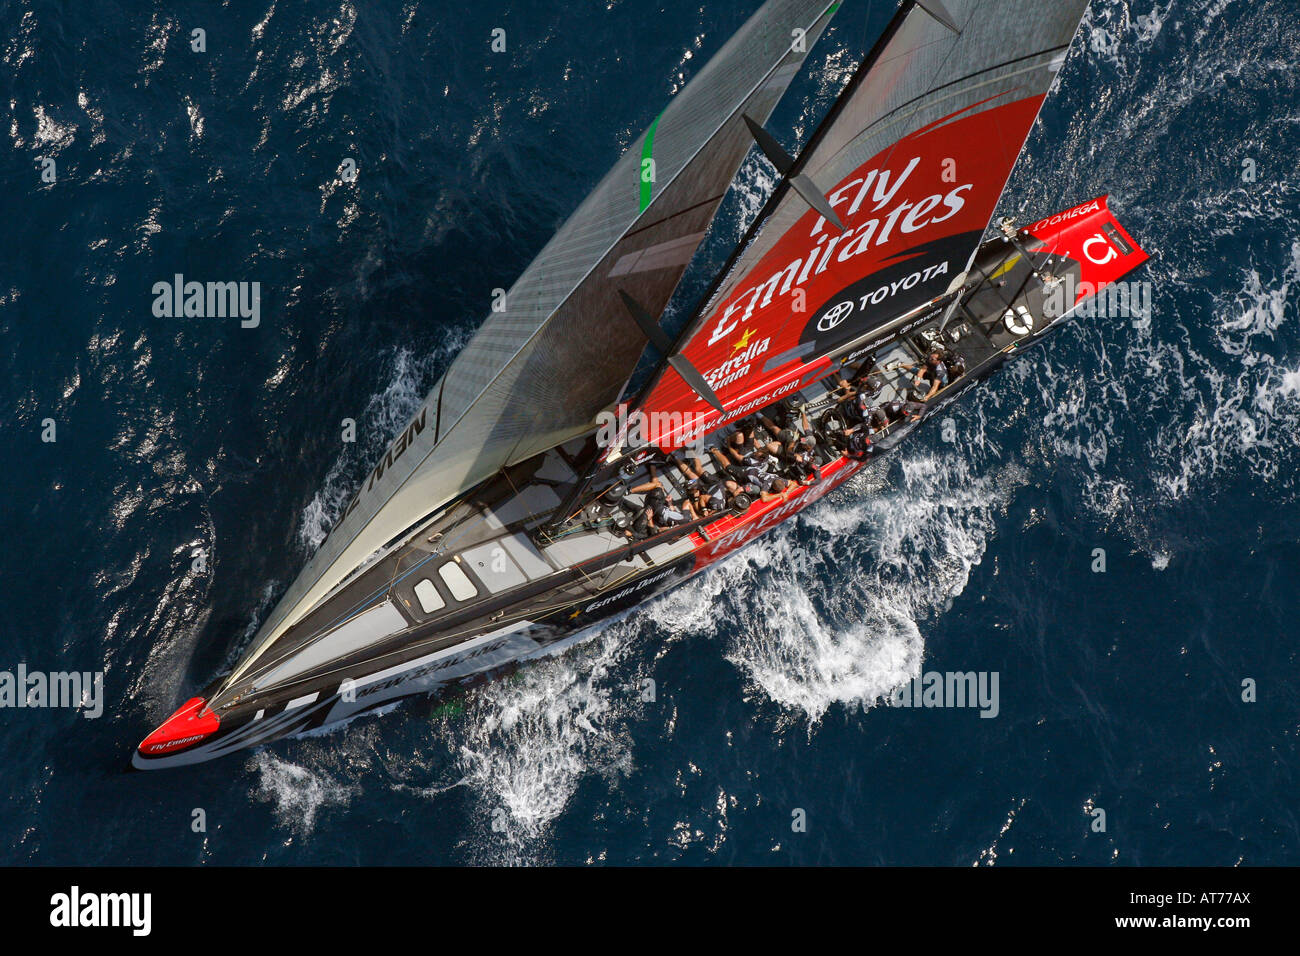 32nd-americas-cup-challenger-emirates-te